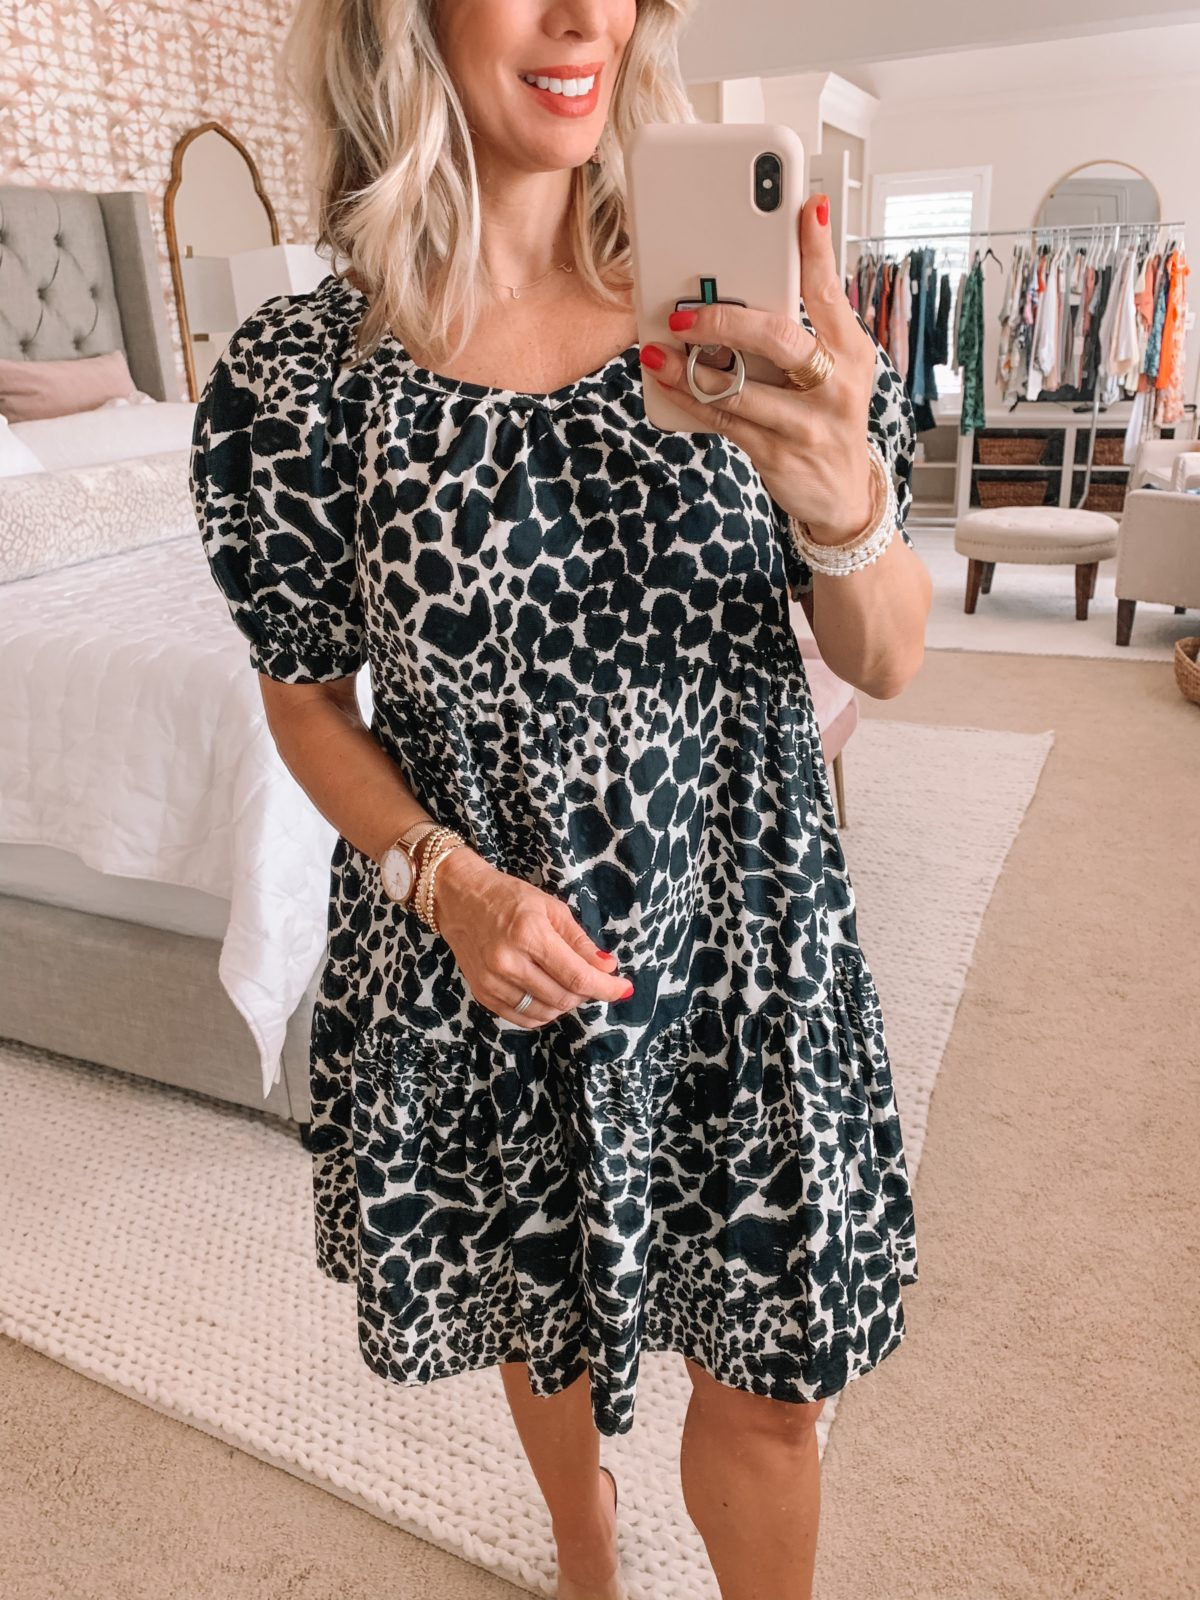 Dressing Room Finds Nordstrom and Target, Leopard Shift Dress, Nude Heels